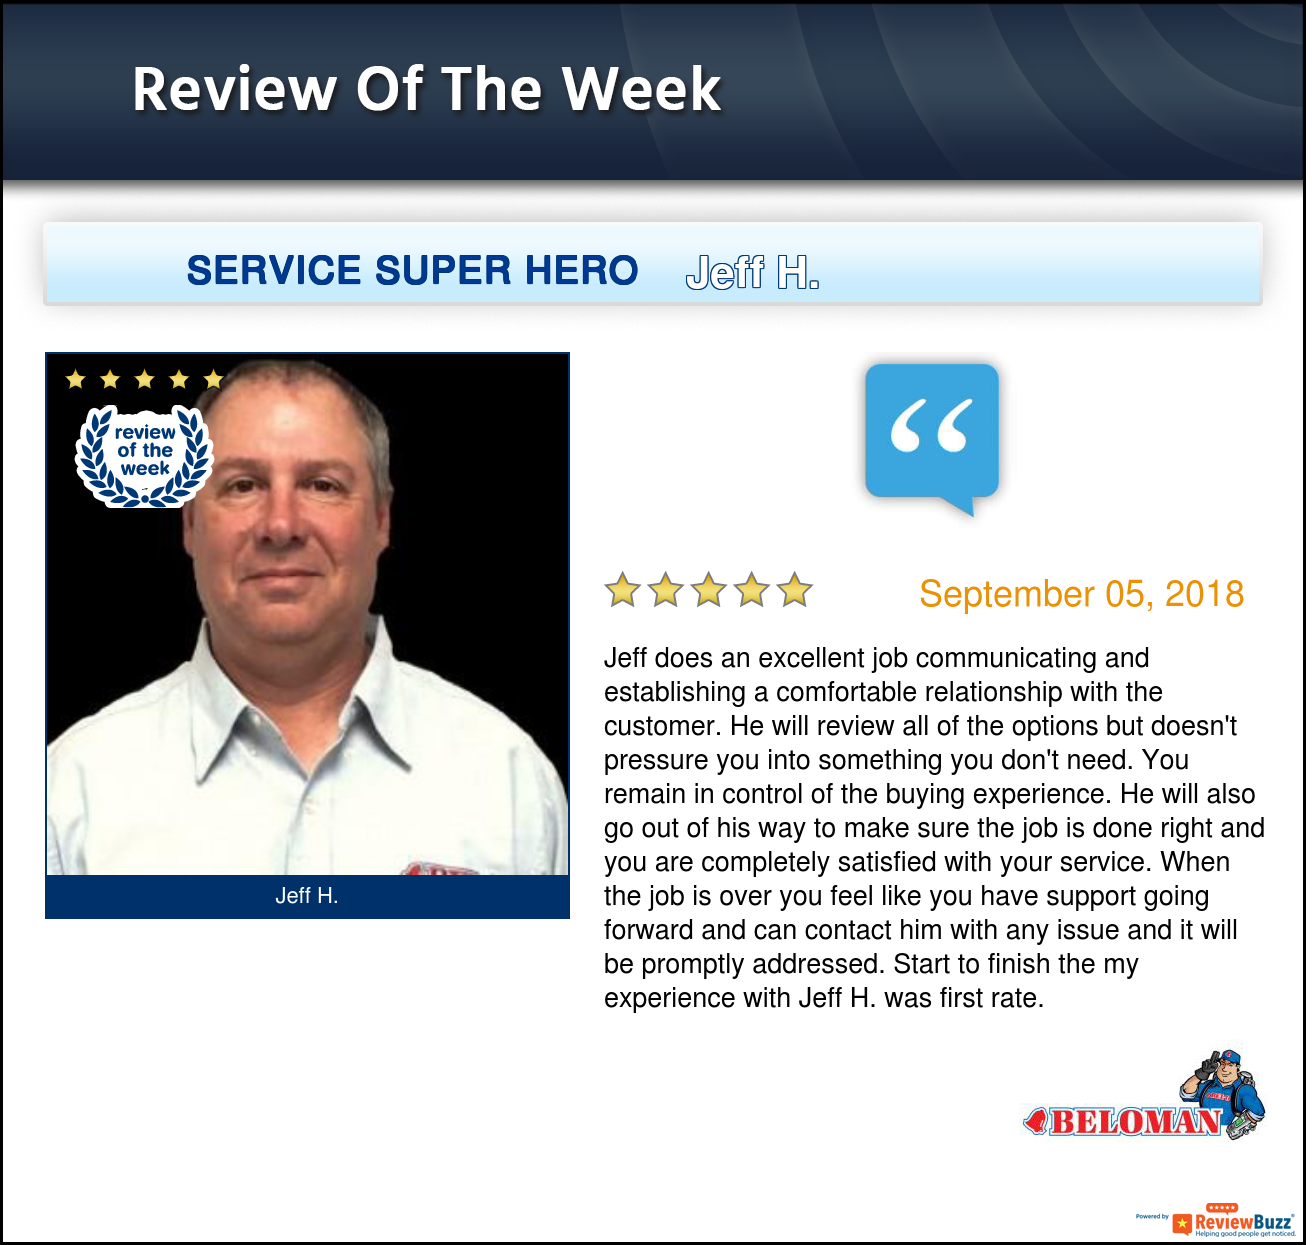 Review of the Week! Heating, cooling, Plumbing, Pest control